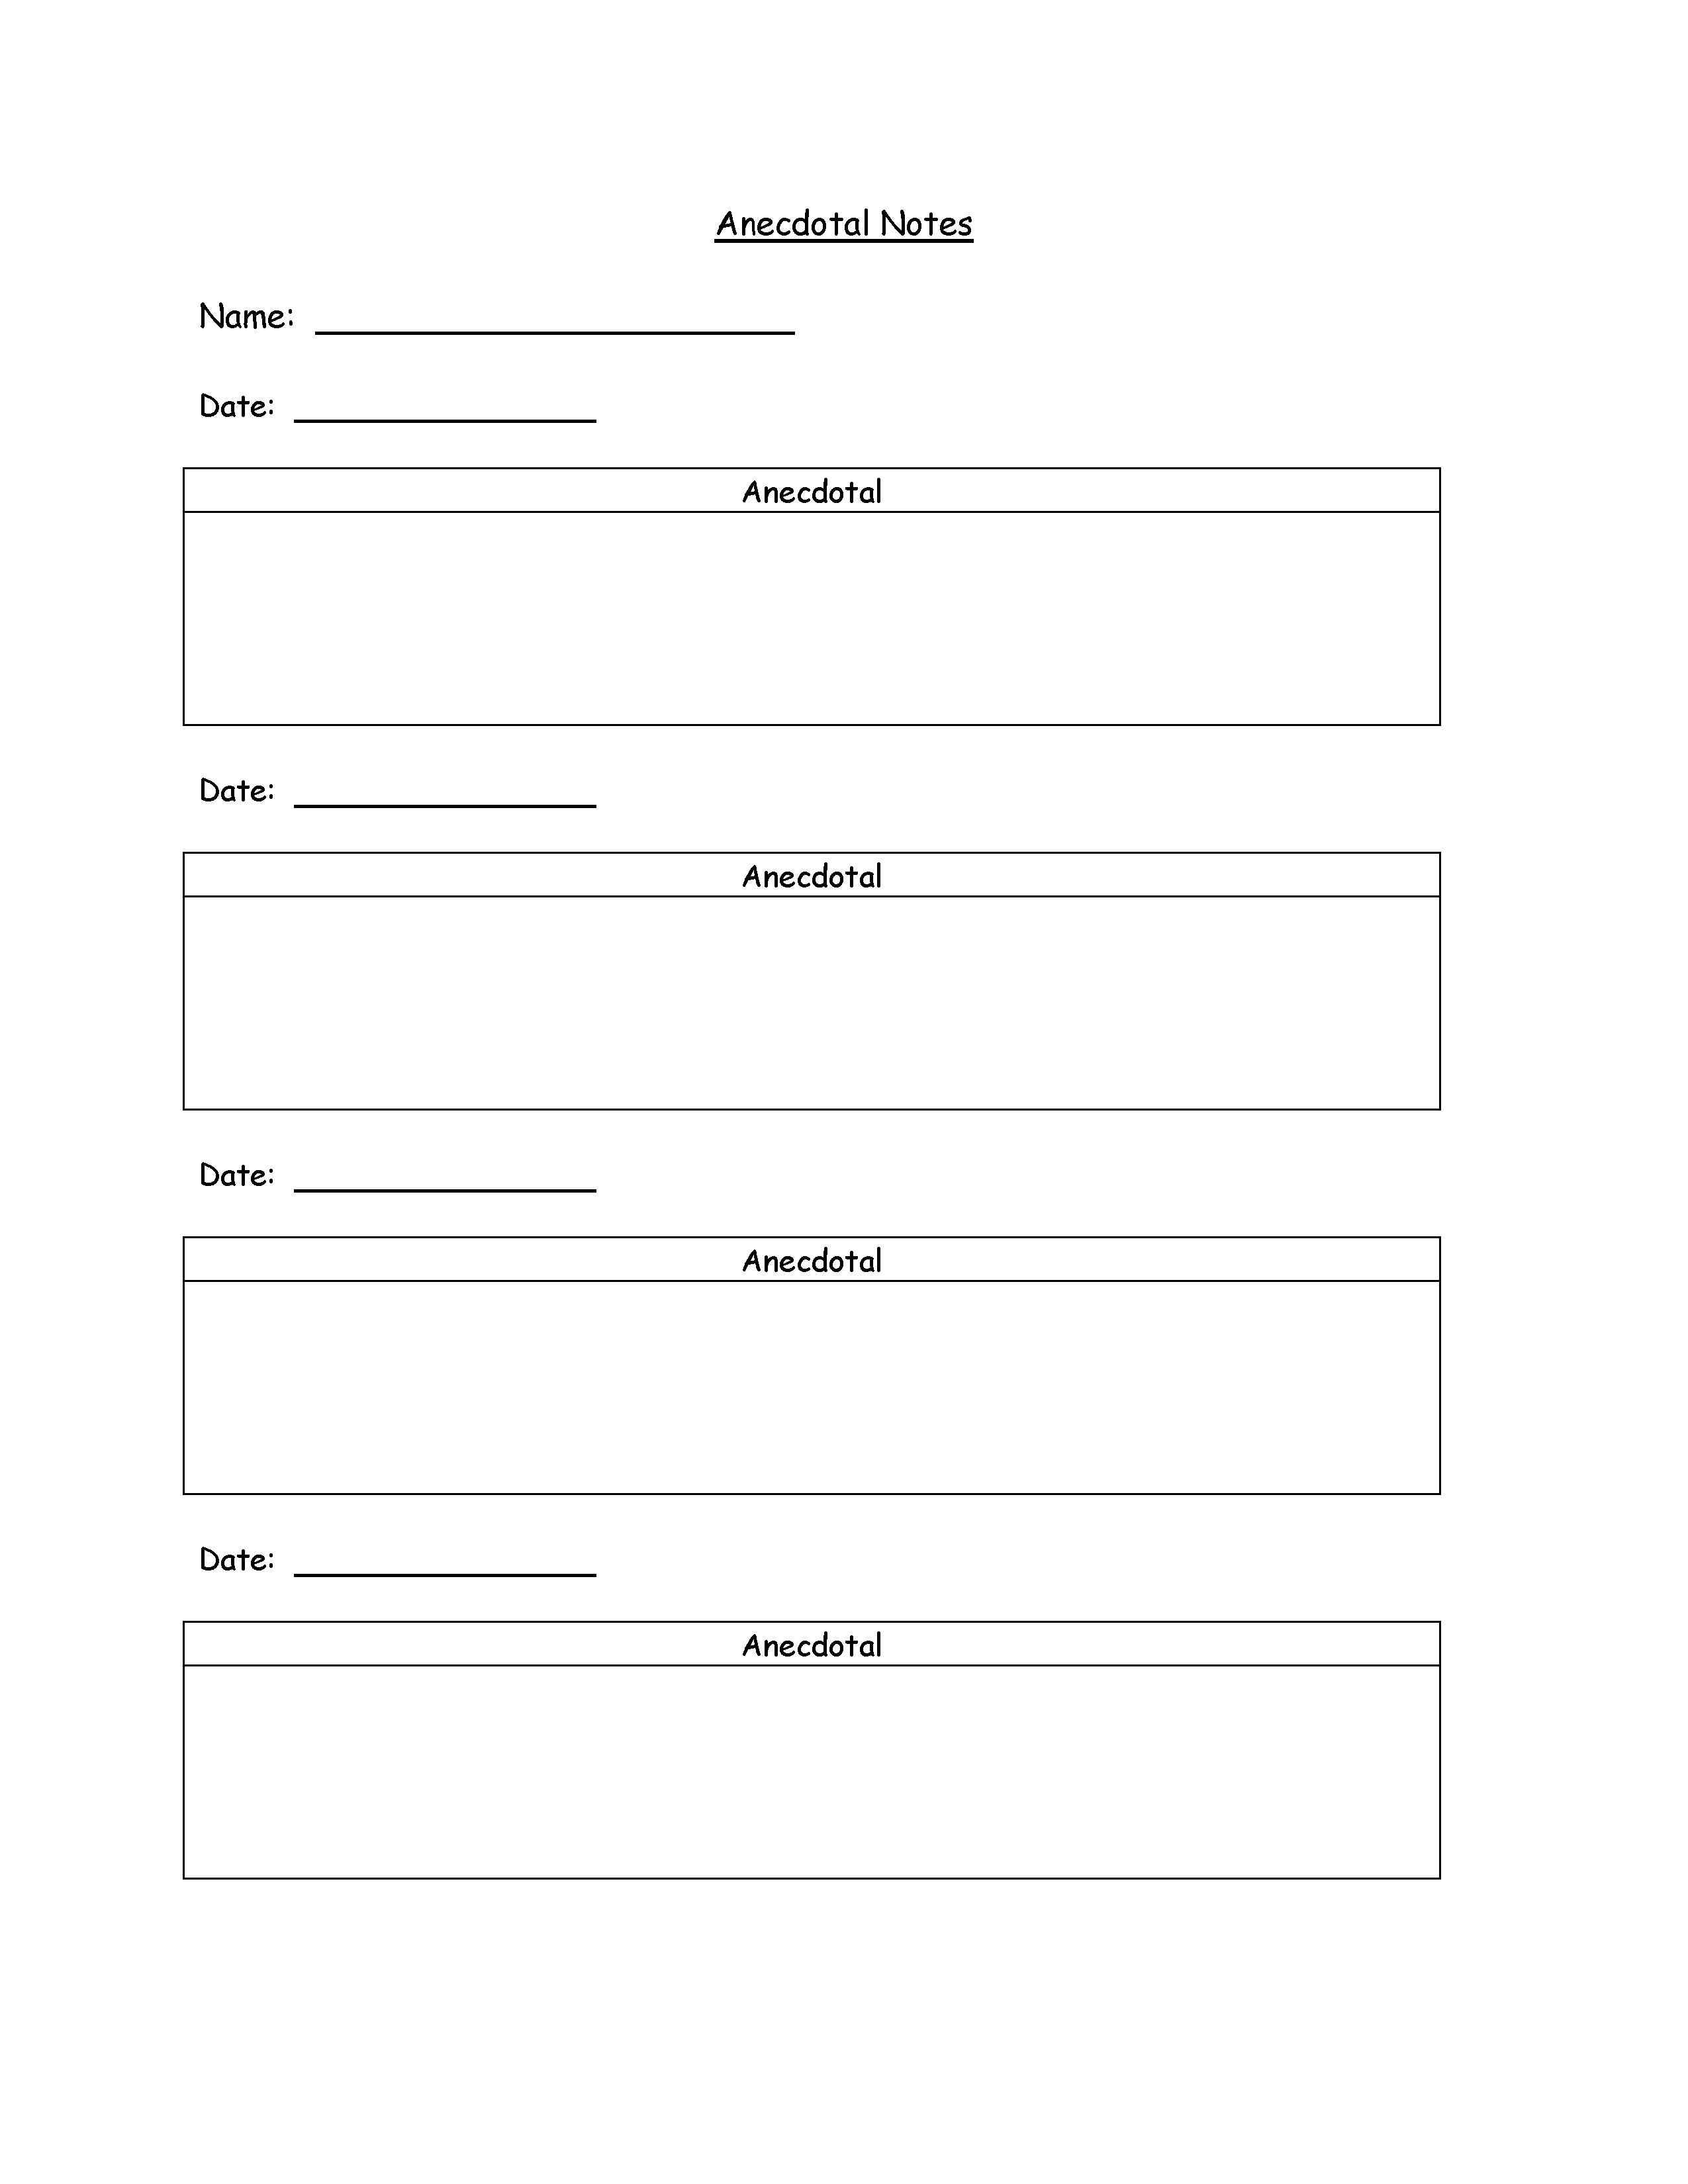 Anecdotal notes template could use for teaching for Anecdotal assessment template